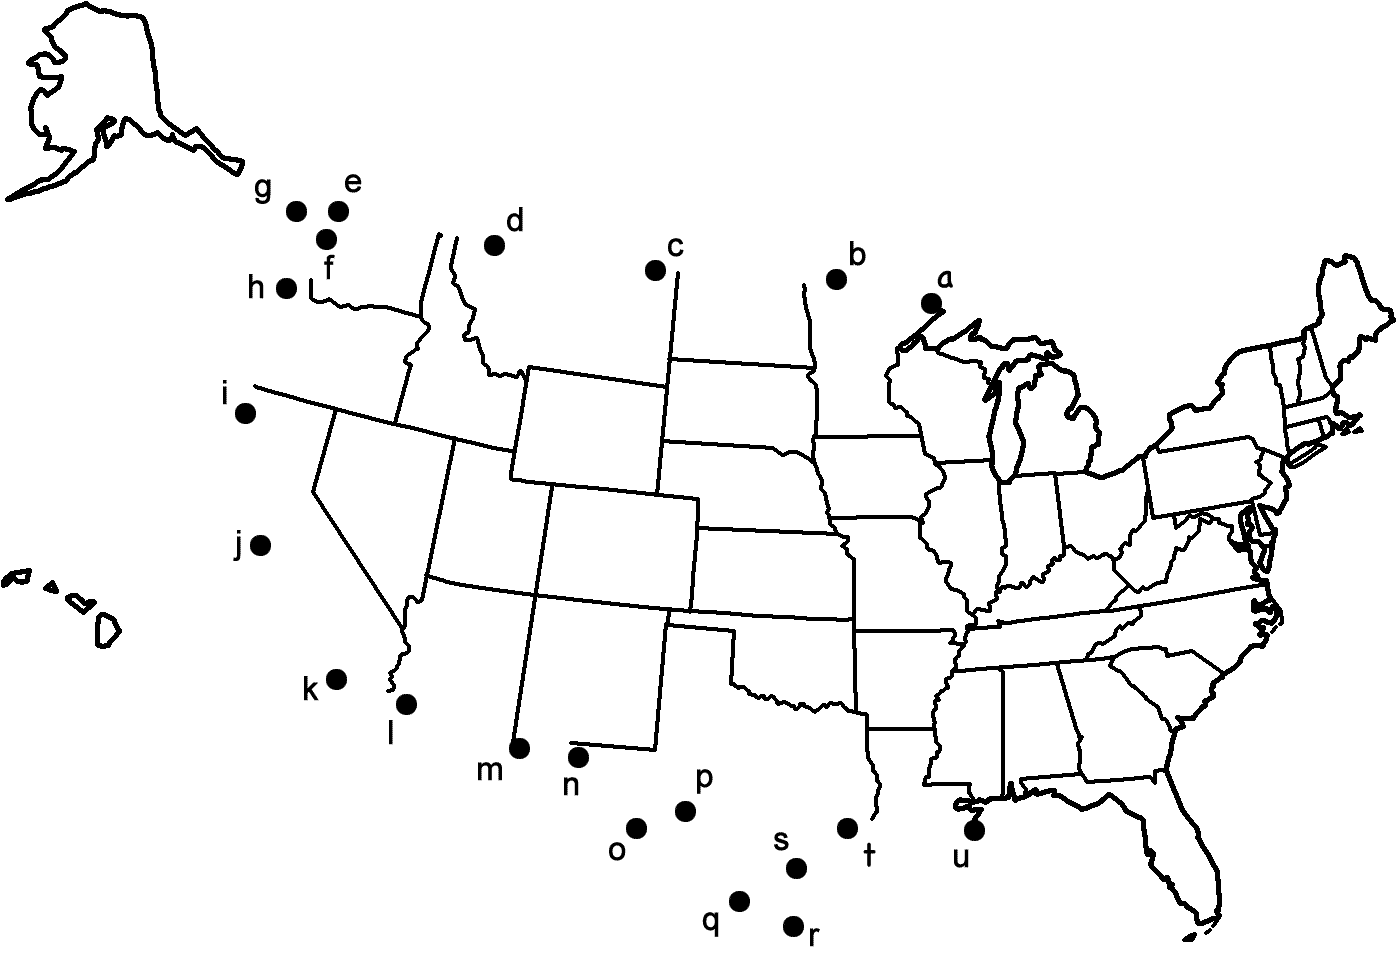 How To Draw A Map Of The USA 9 Steps with Pictures WikiHow